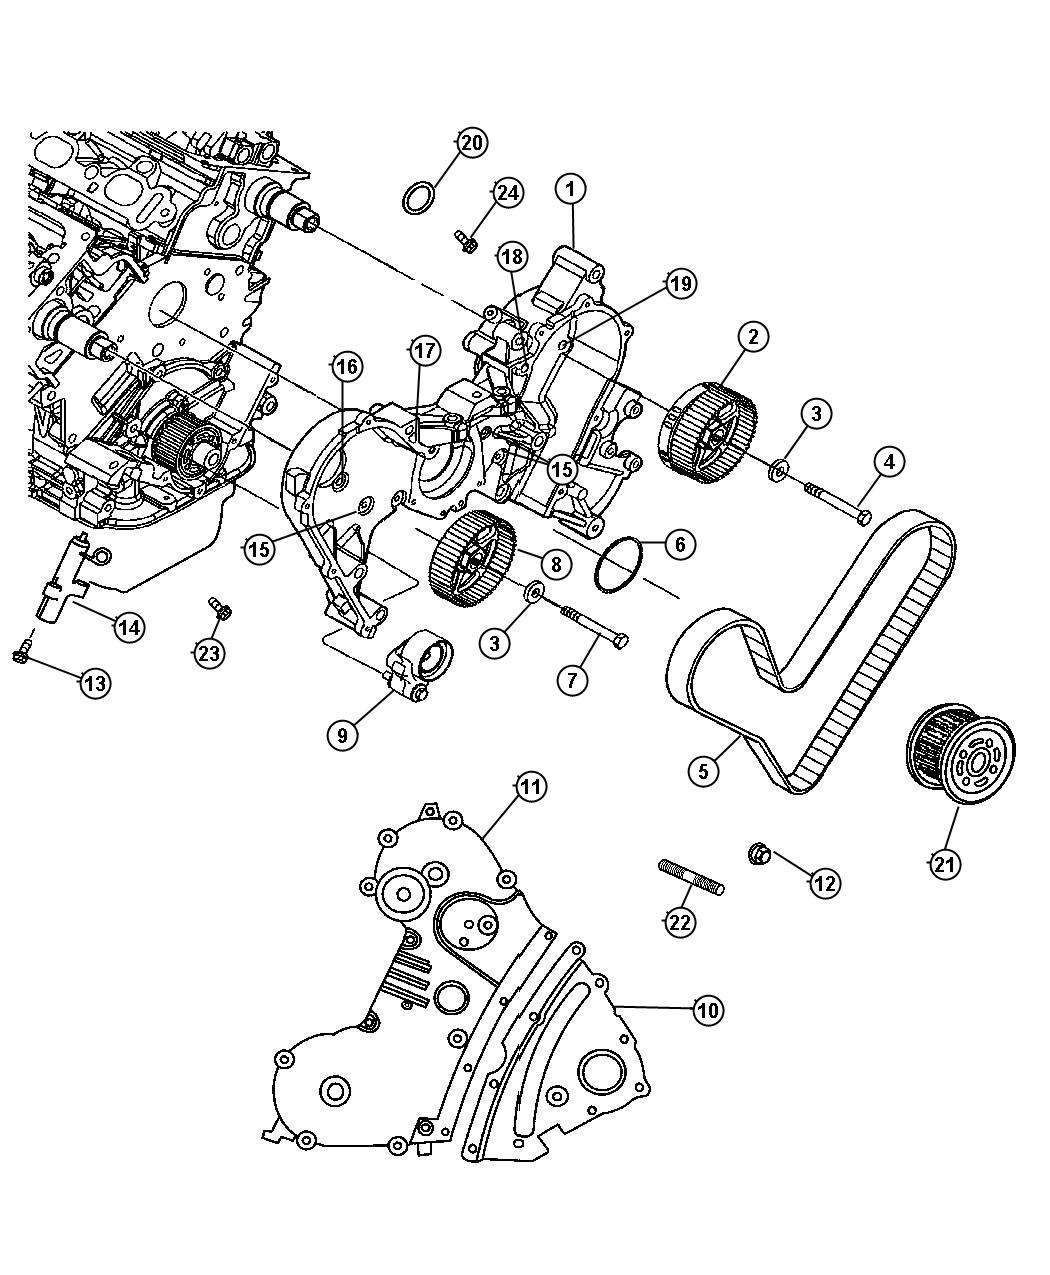 Chrysler pacifica engine diagram get free image